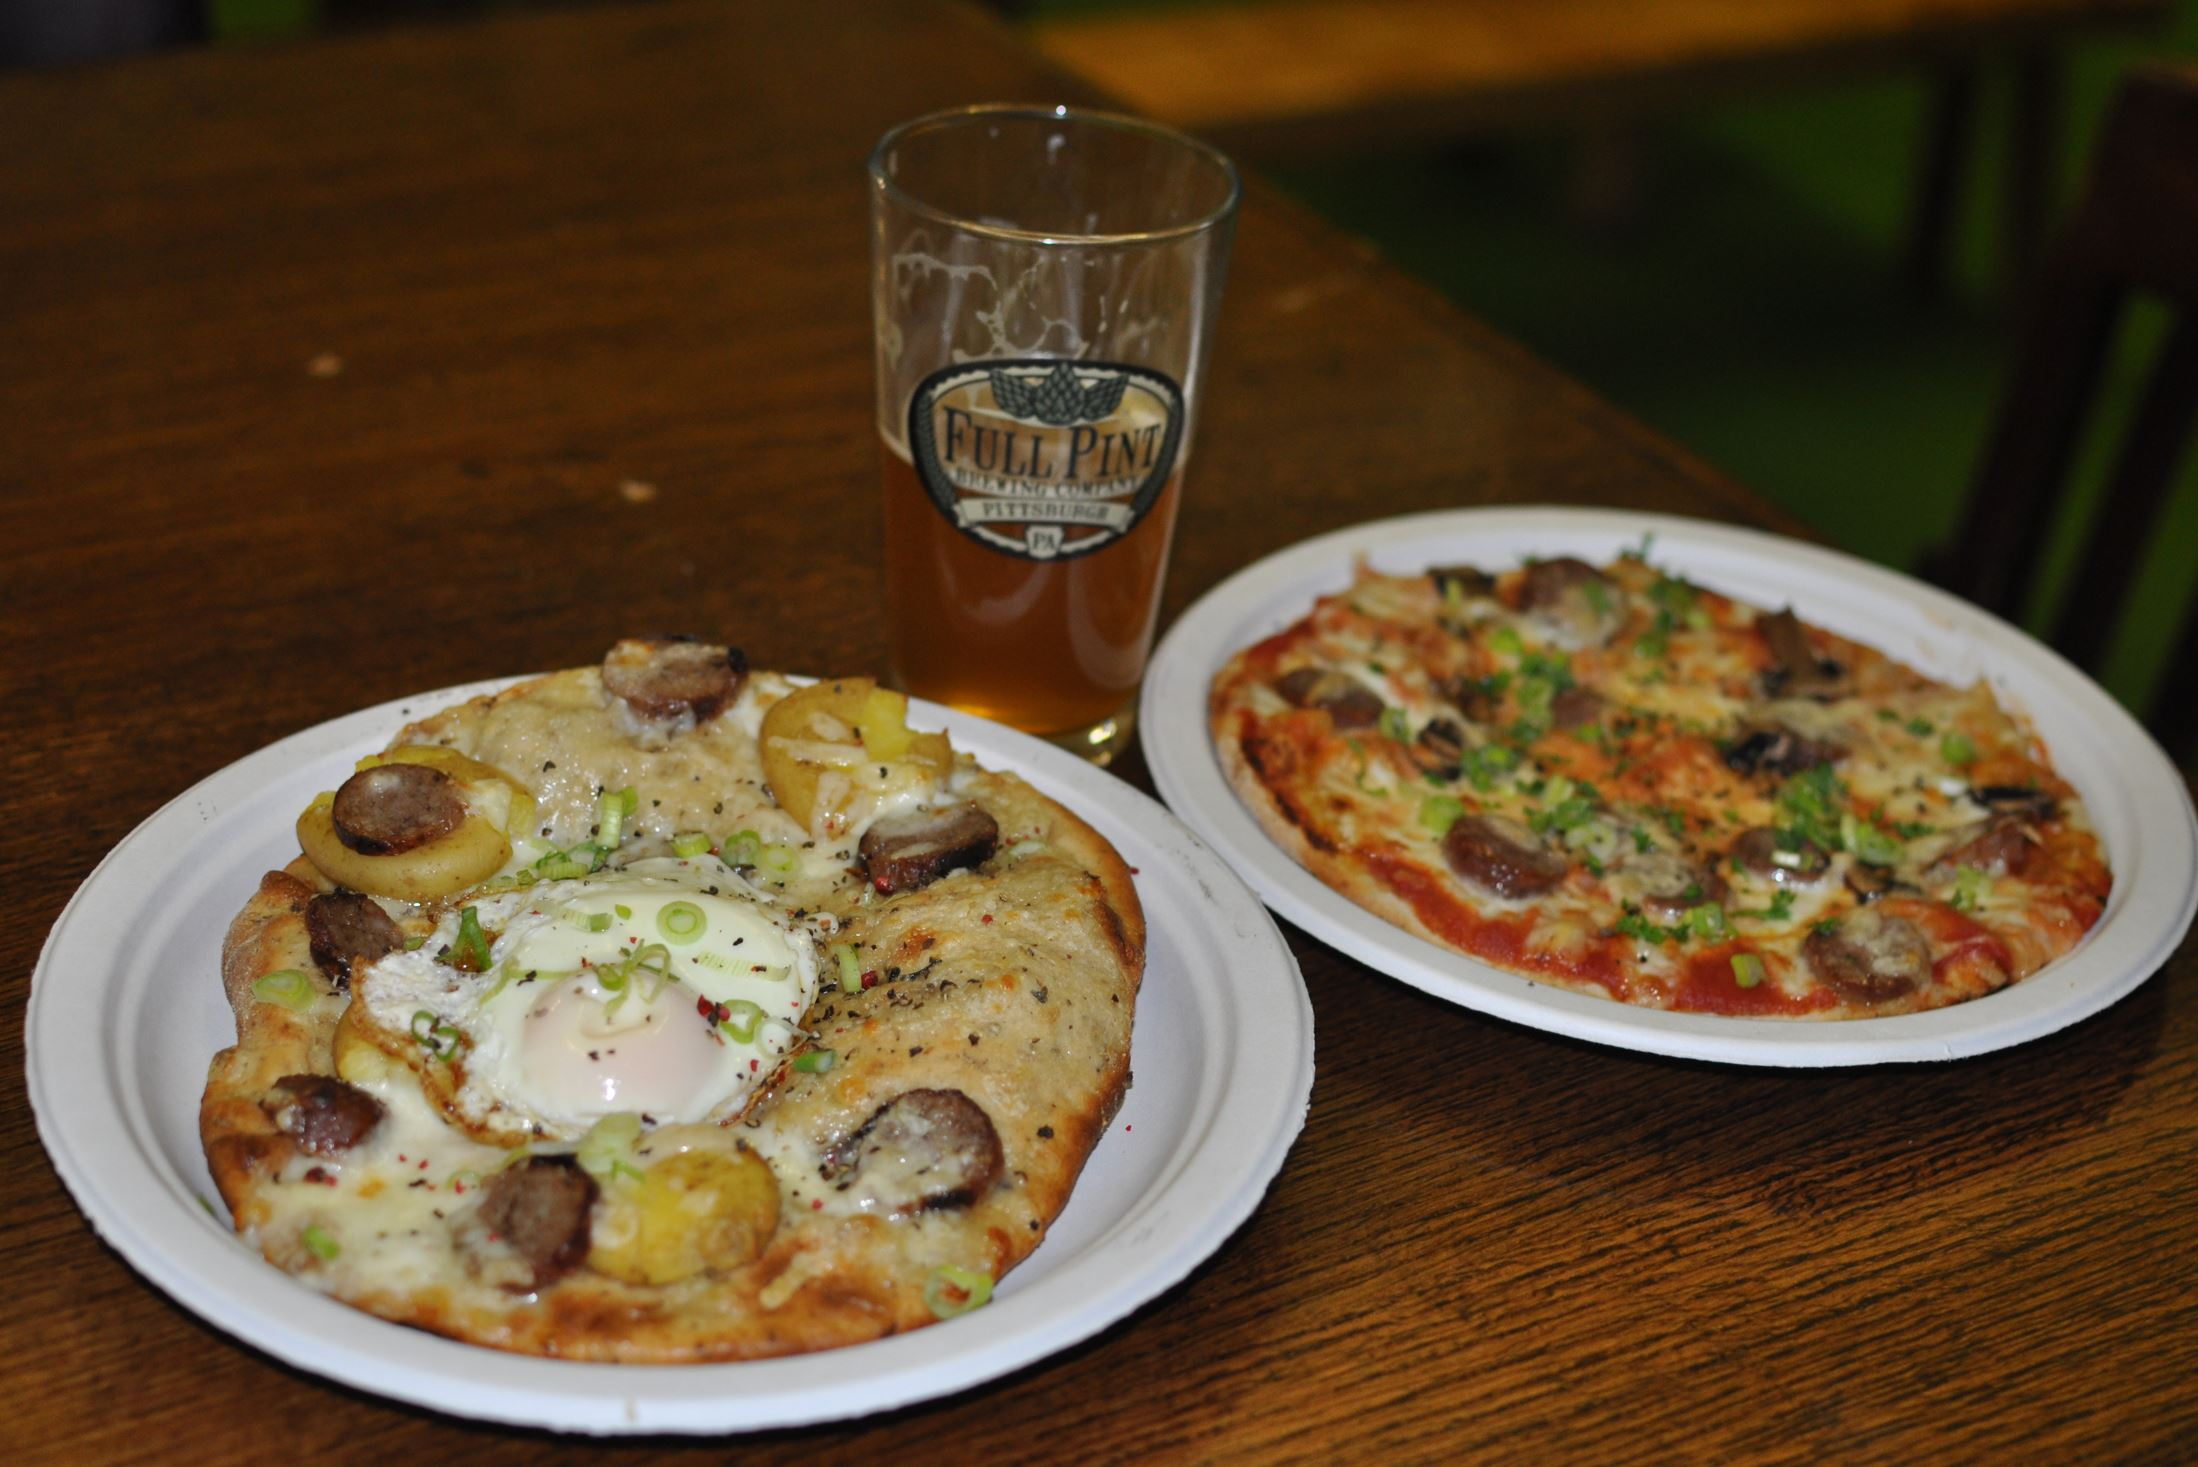 20140612GIGmunch1  The Irish Breakfast and Sausage and Mushroom pizzas at Full Pint Brewing in North Versailles.